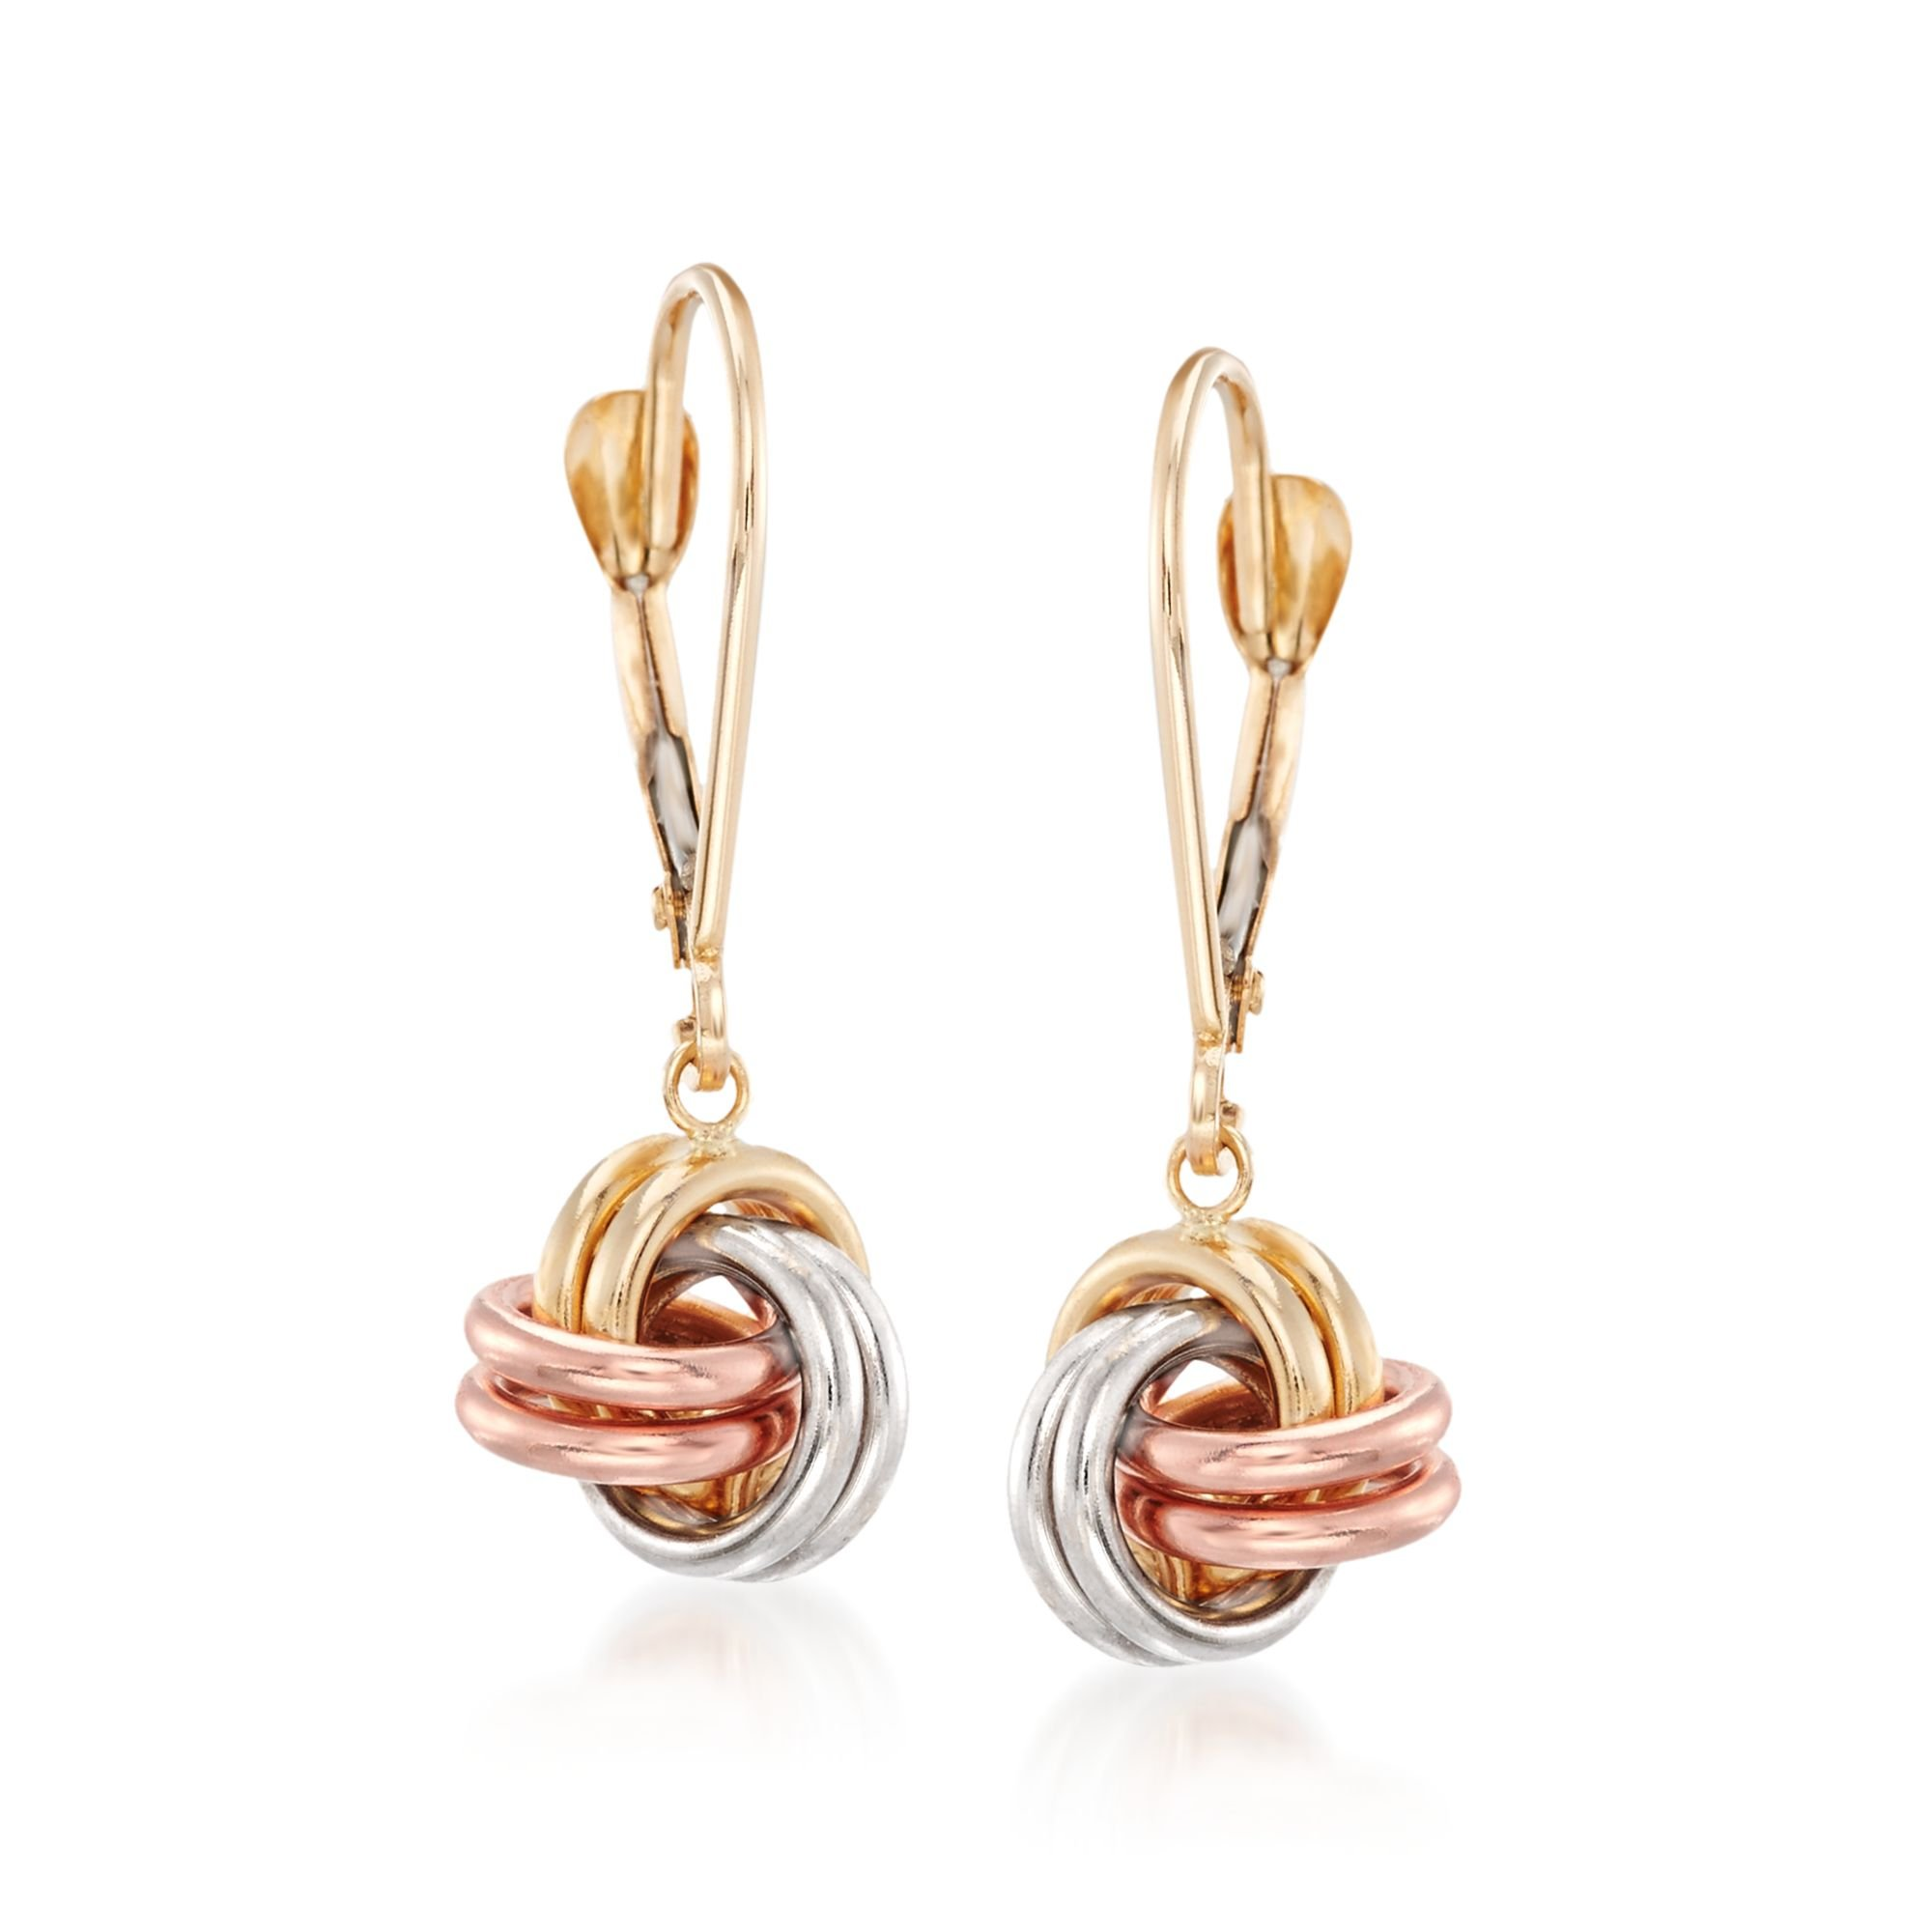 Ross-Simons 14kt Tri-Colored Gold Love Knot Drop Earrings